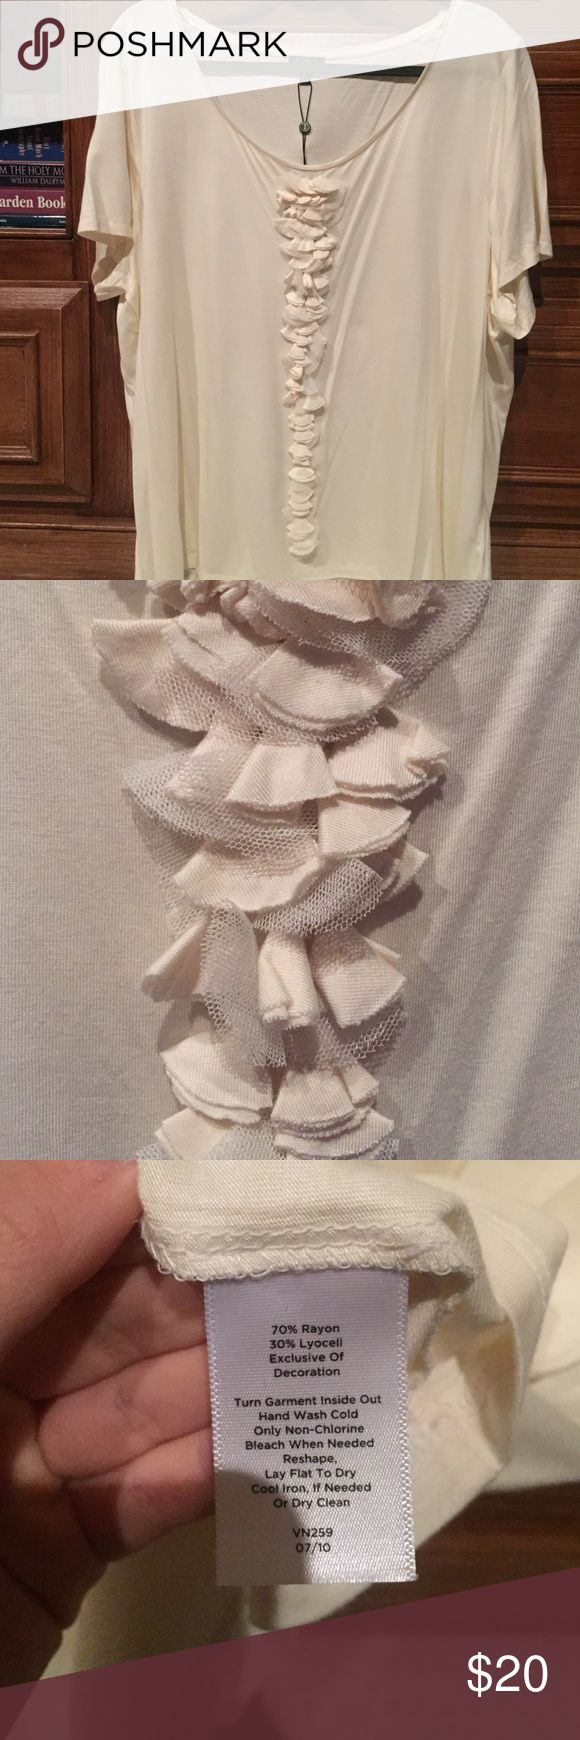 NWT Talbots Cream Short Sleeve Top NWT. Also have it in a nice purple color in another listing! Talbots Tops